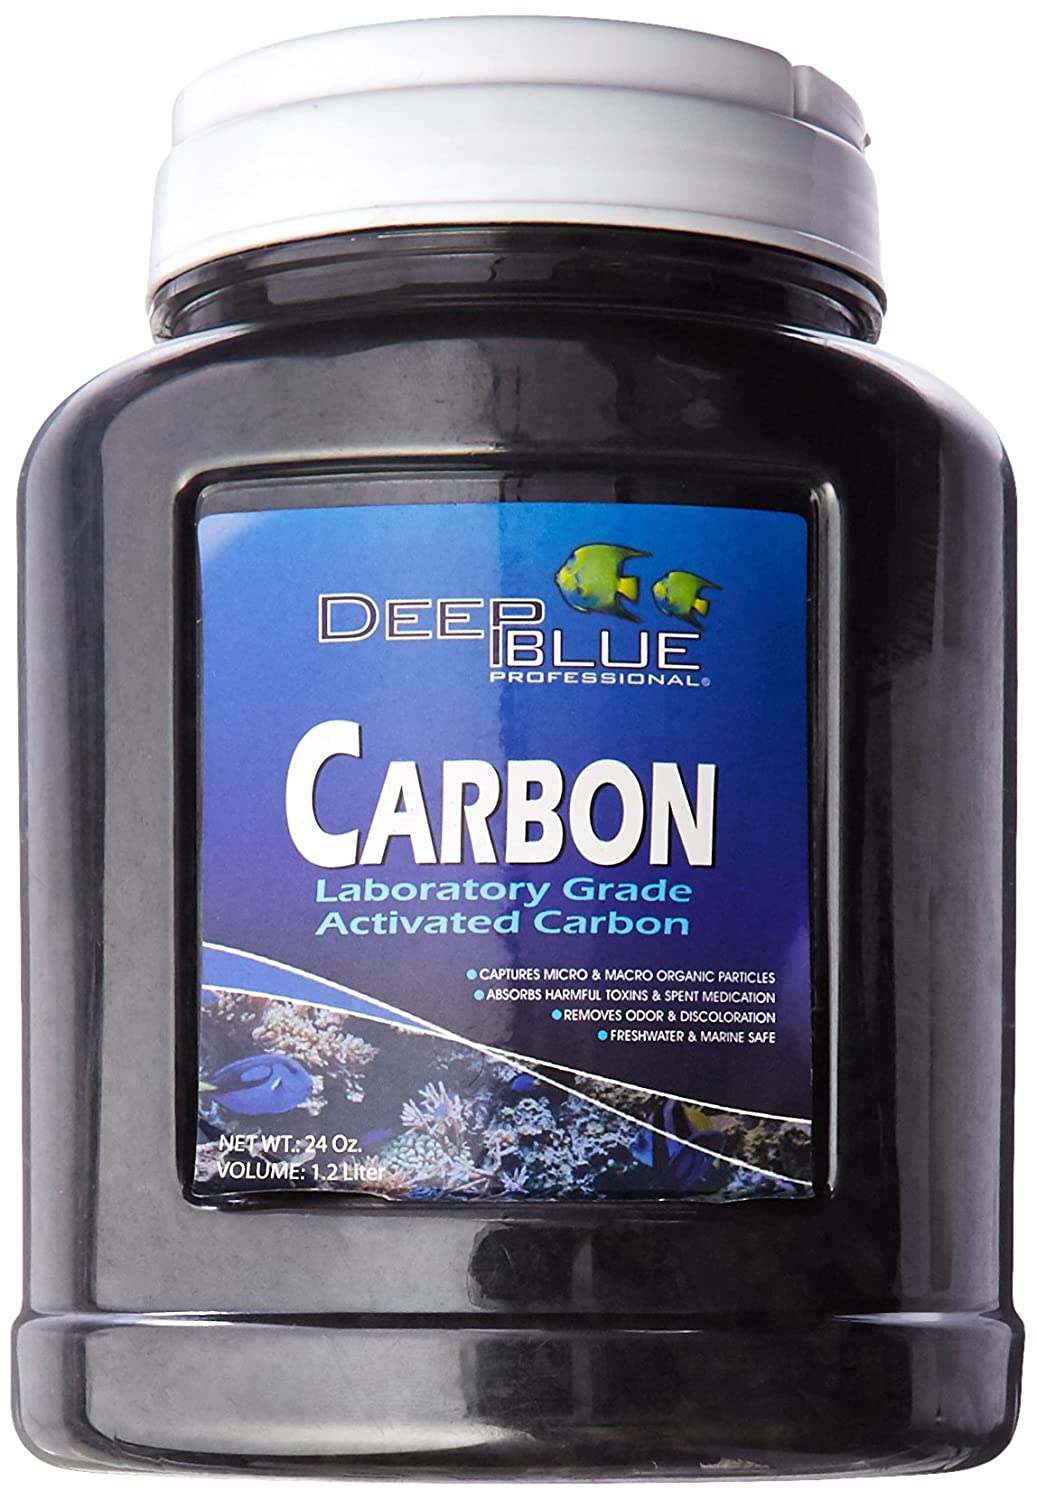 Deep Blue Professional ADB41011 Activated Carbon in Jar with Media Bag, 24-Ounce by Deep Blue Professional B006OORGQW